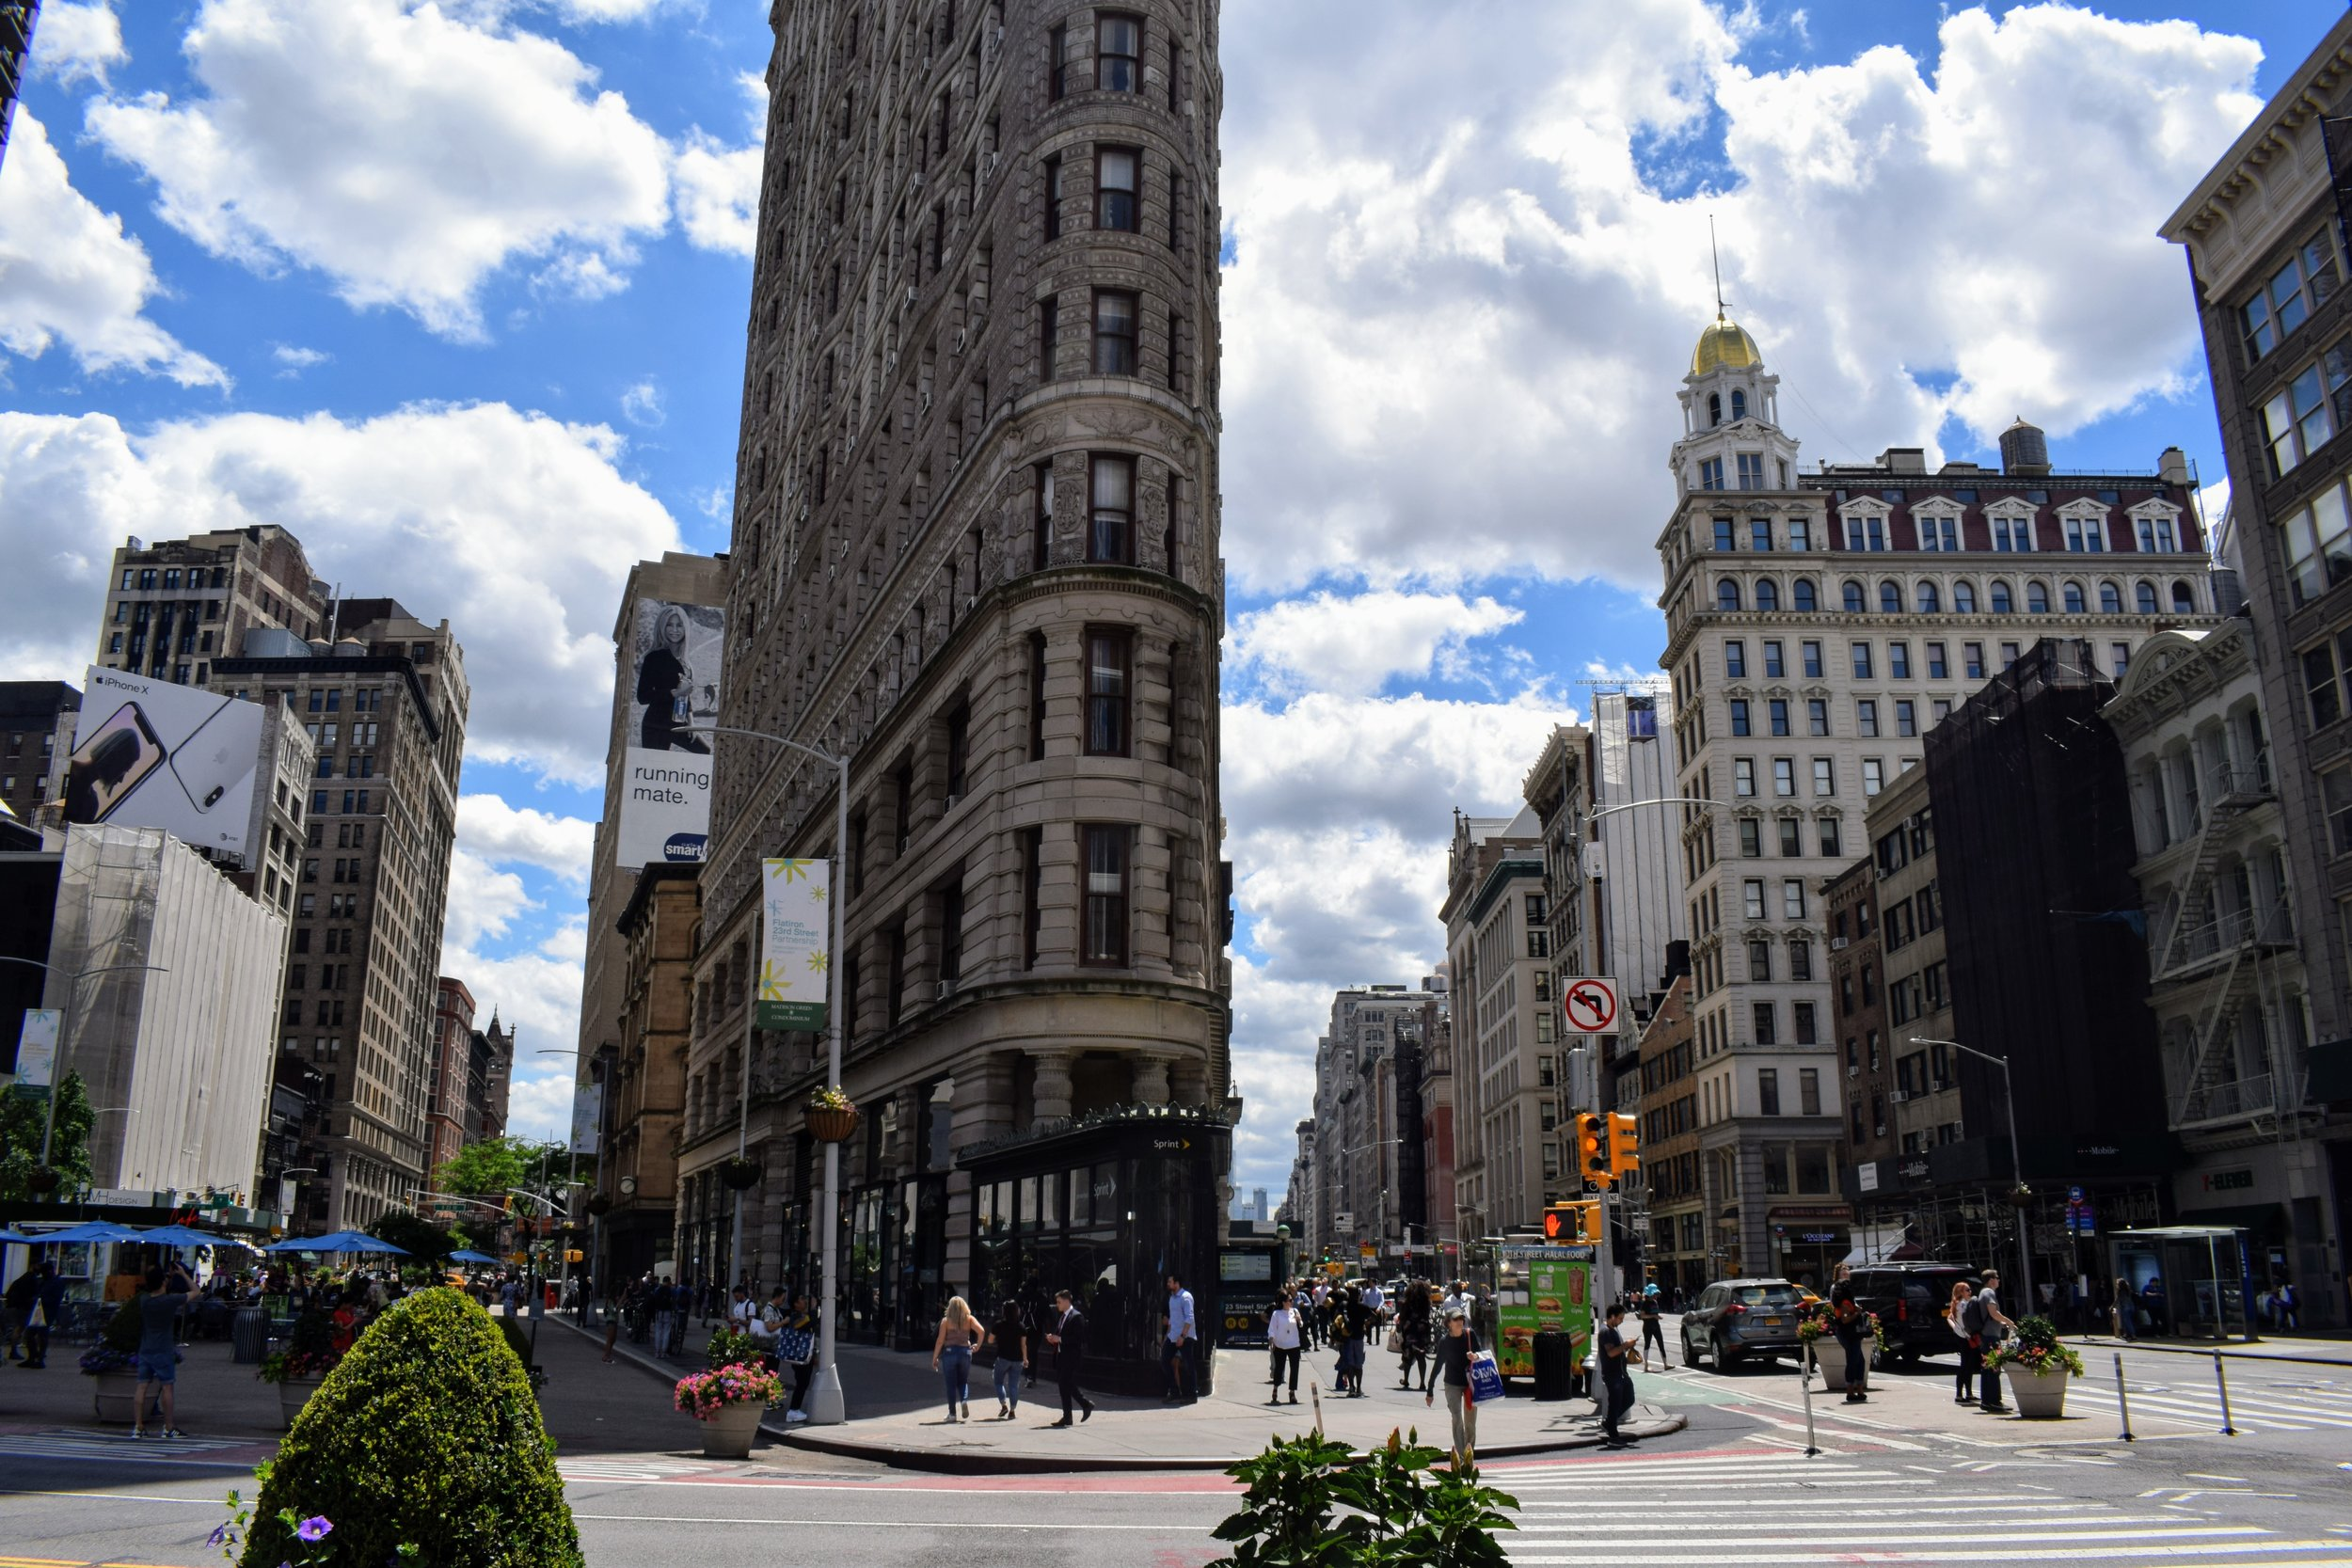 A street view of the Flatiron Building on 5th Avenue.